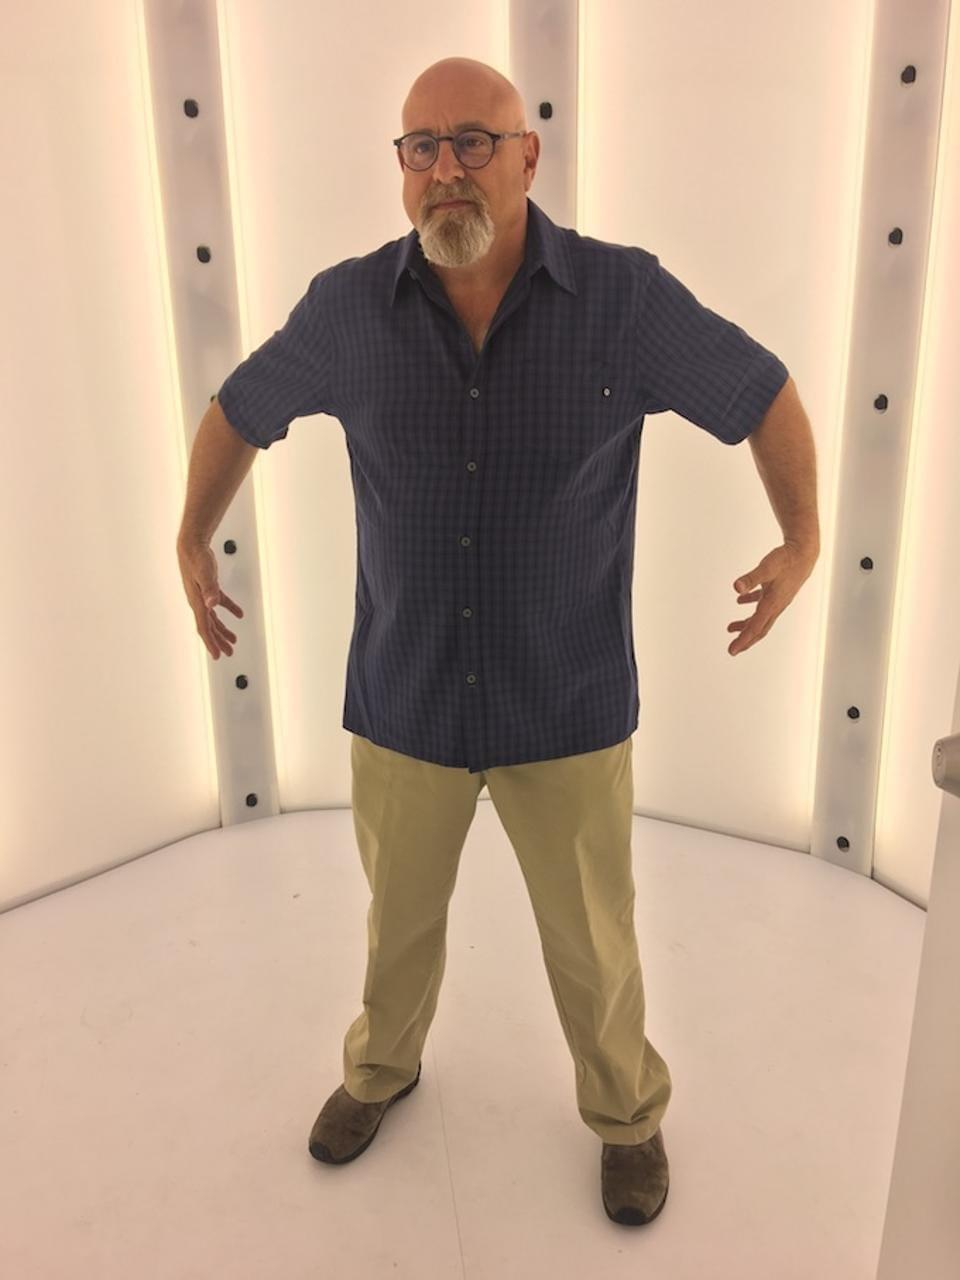 Pete Forde's mobile capture room used 70 cameras to create my photo-real 3D avatar.